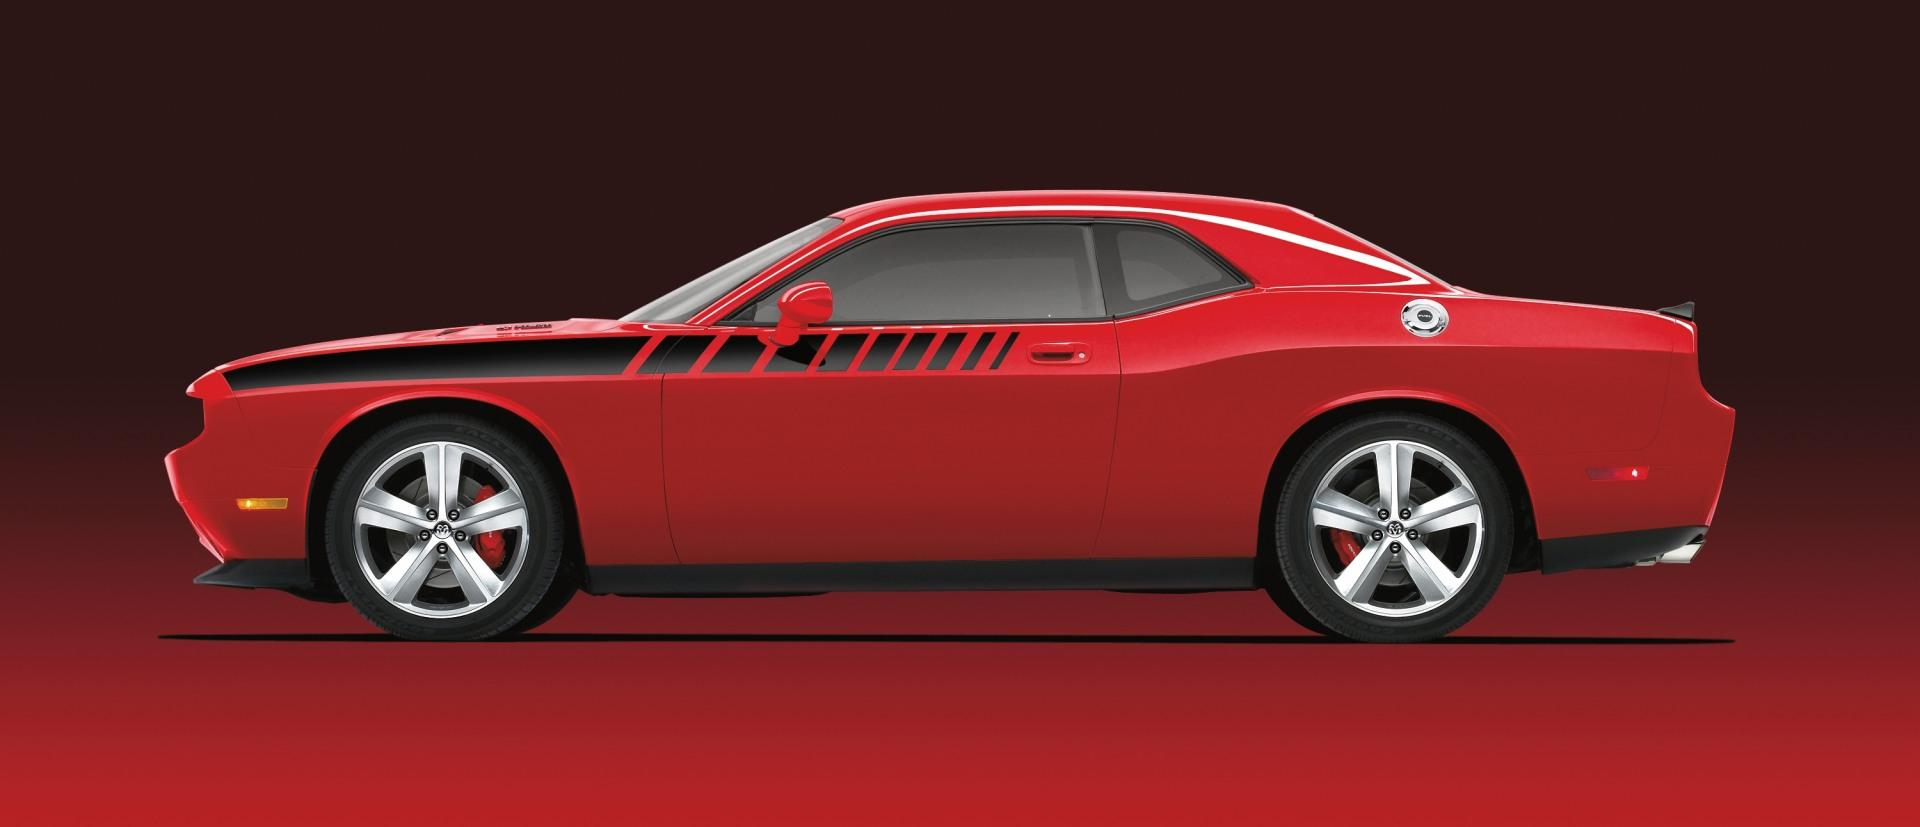 2010 dodge challenger appearance package. Black Bedroom Furniture Sets. Home Design Ideas